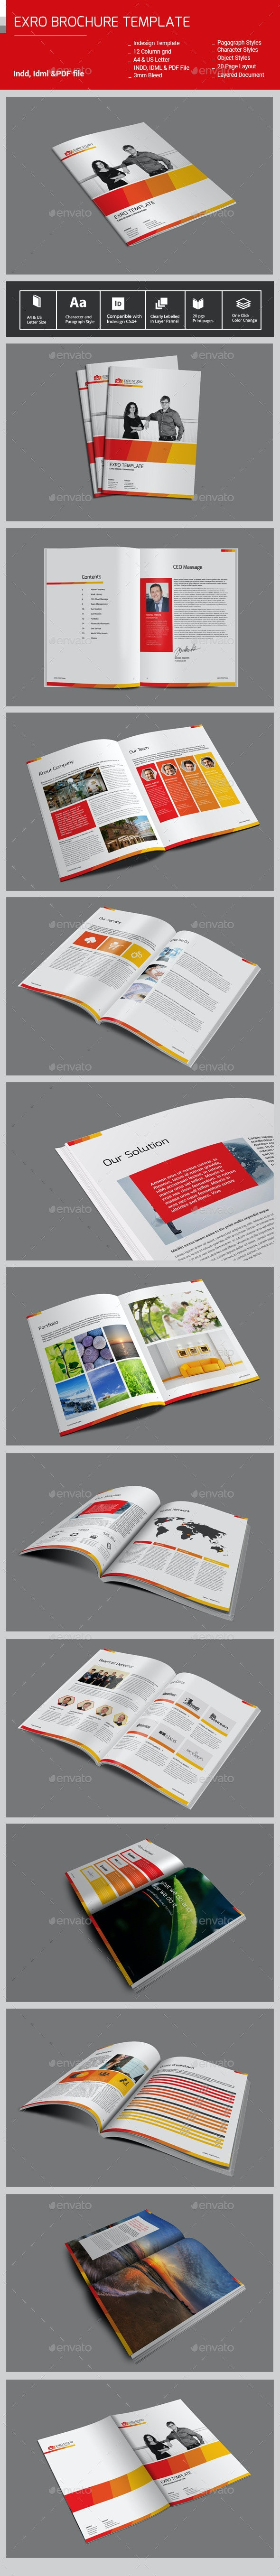 Exro BrochureTemplate - Corporate Brochures